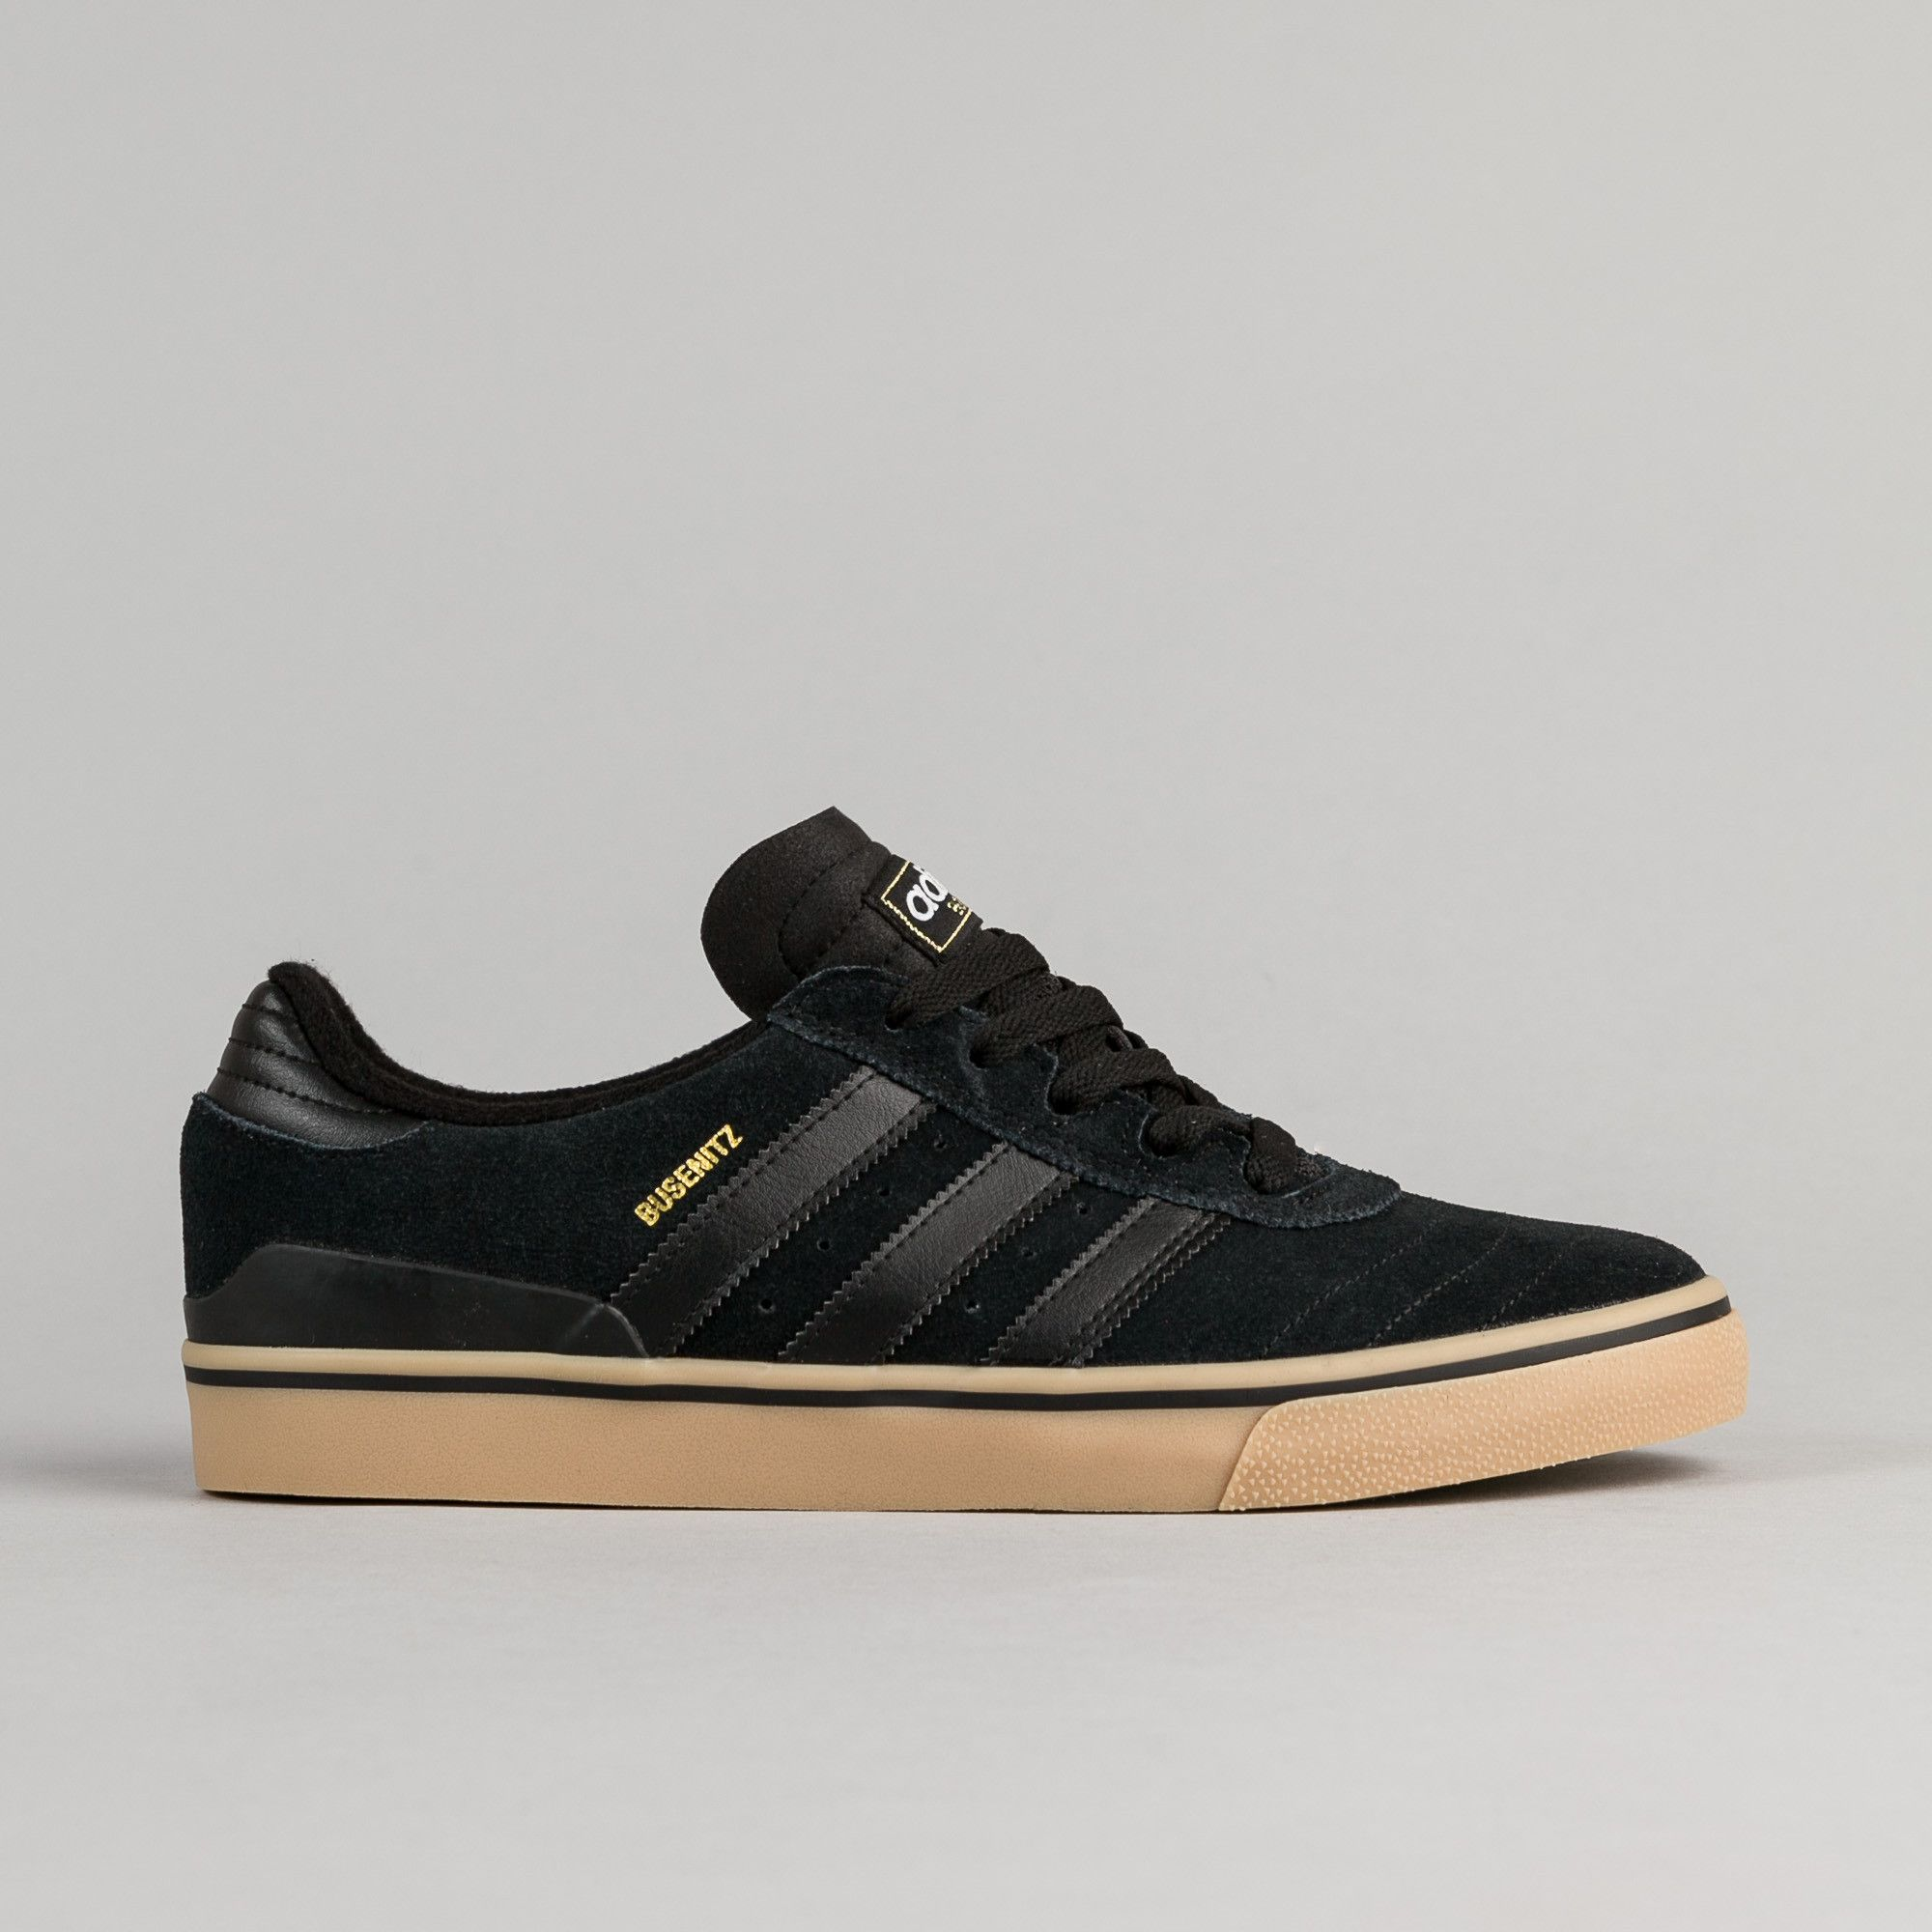 Free Shipping > Free Returns > Shop the Adidas Busenitz Vulc